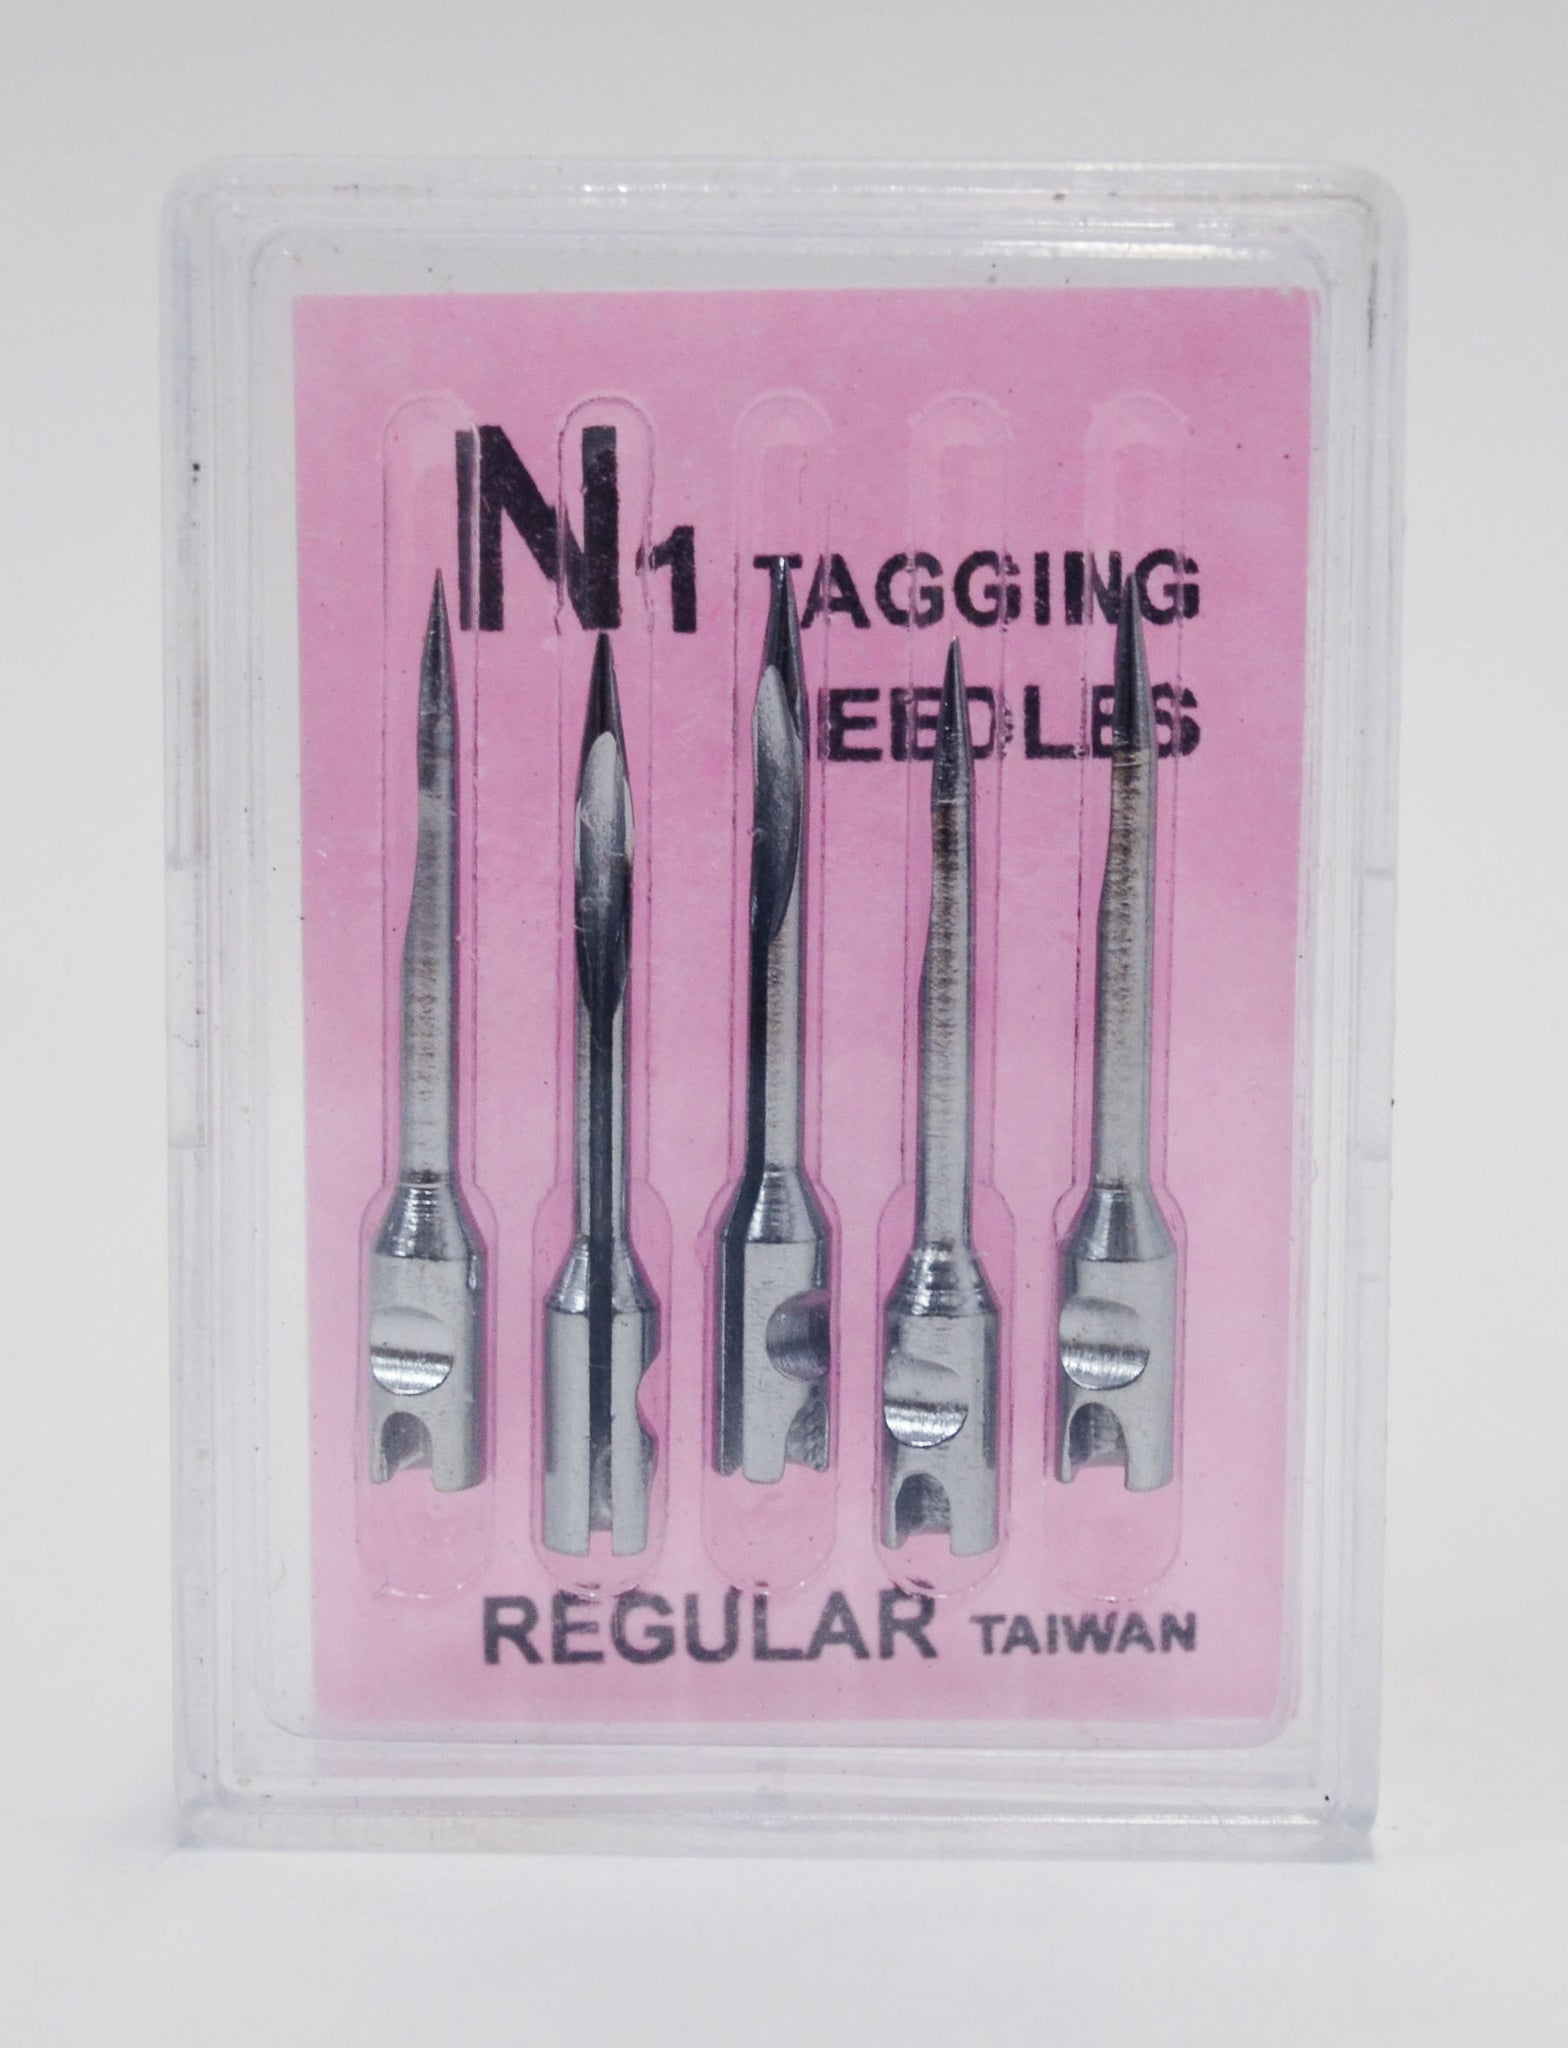 Replacement Tagging Needles - N1